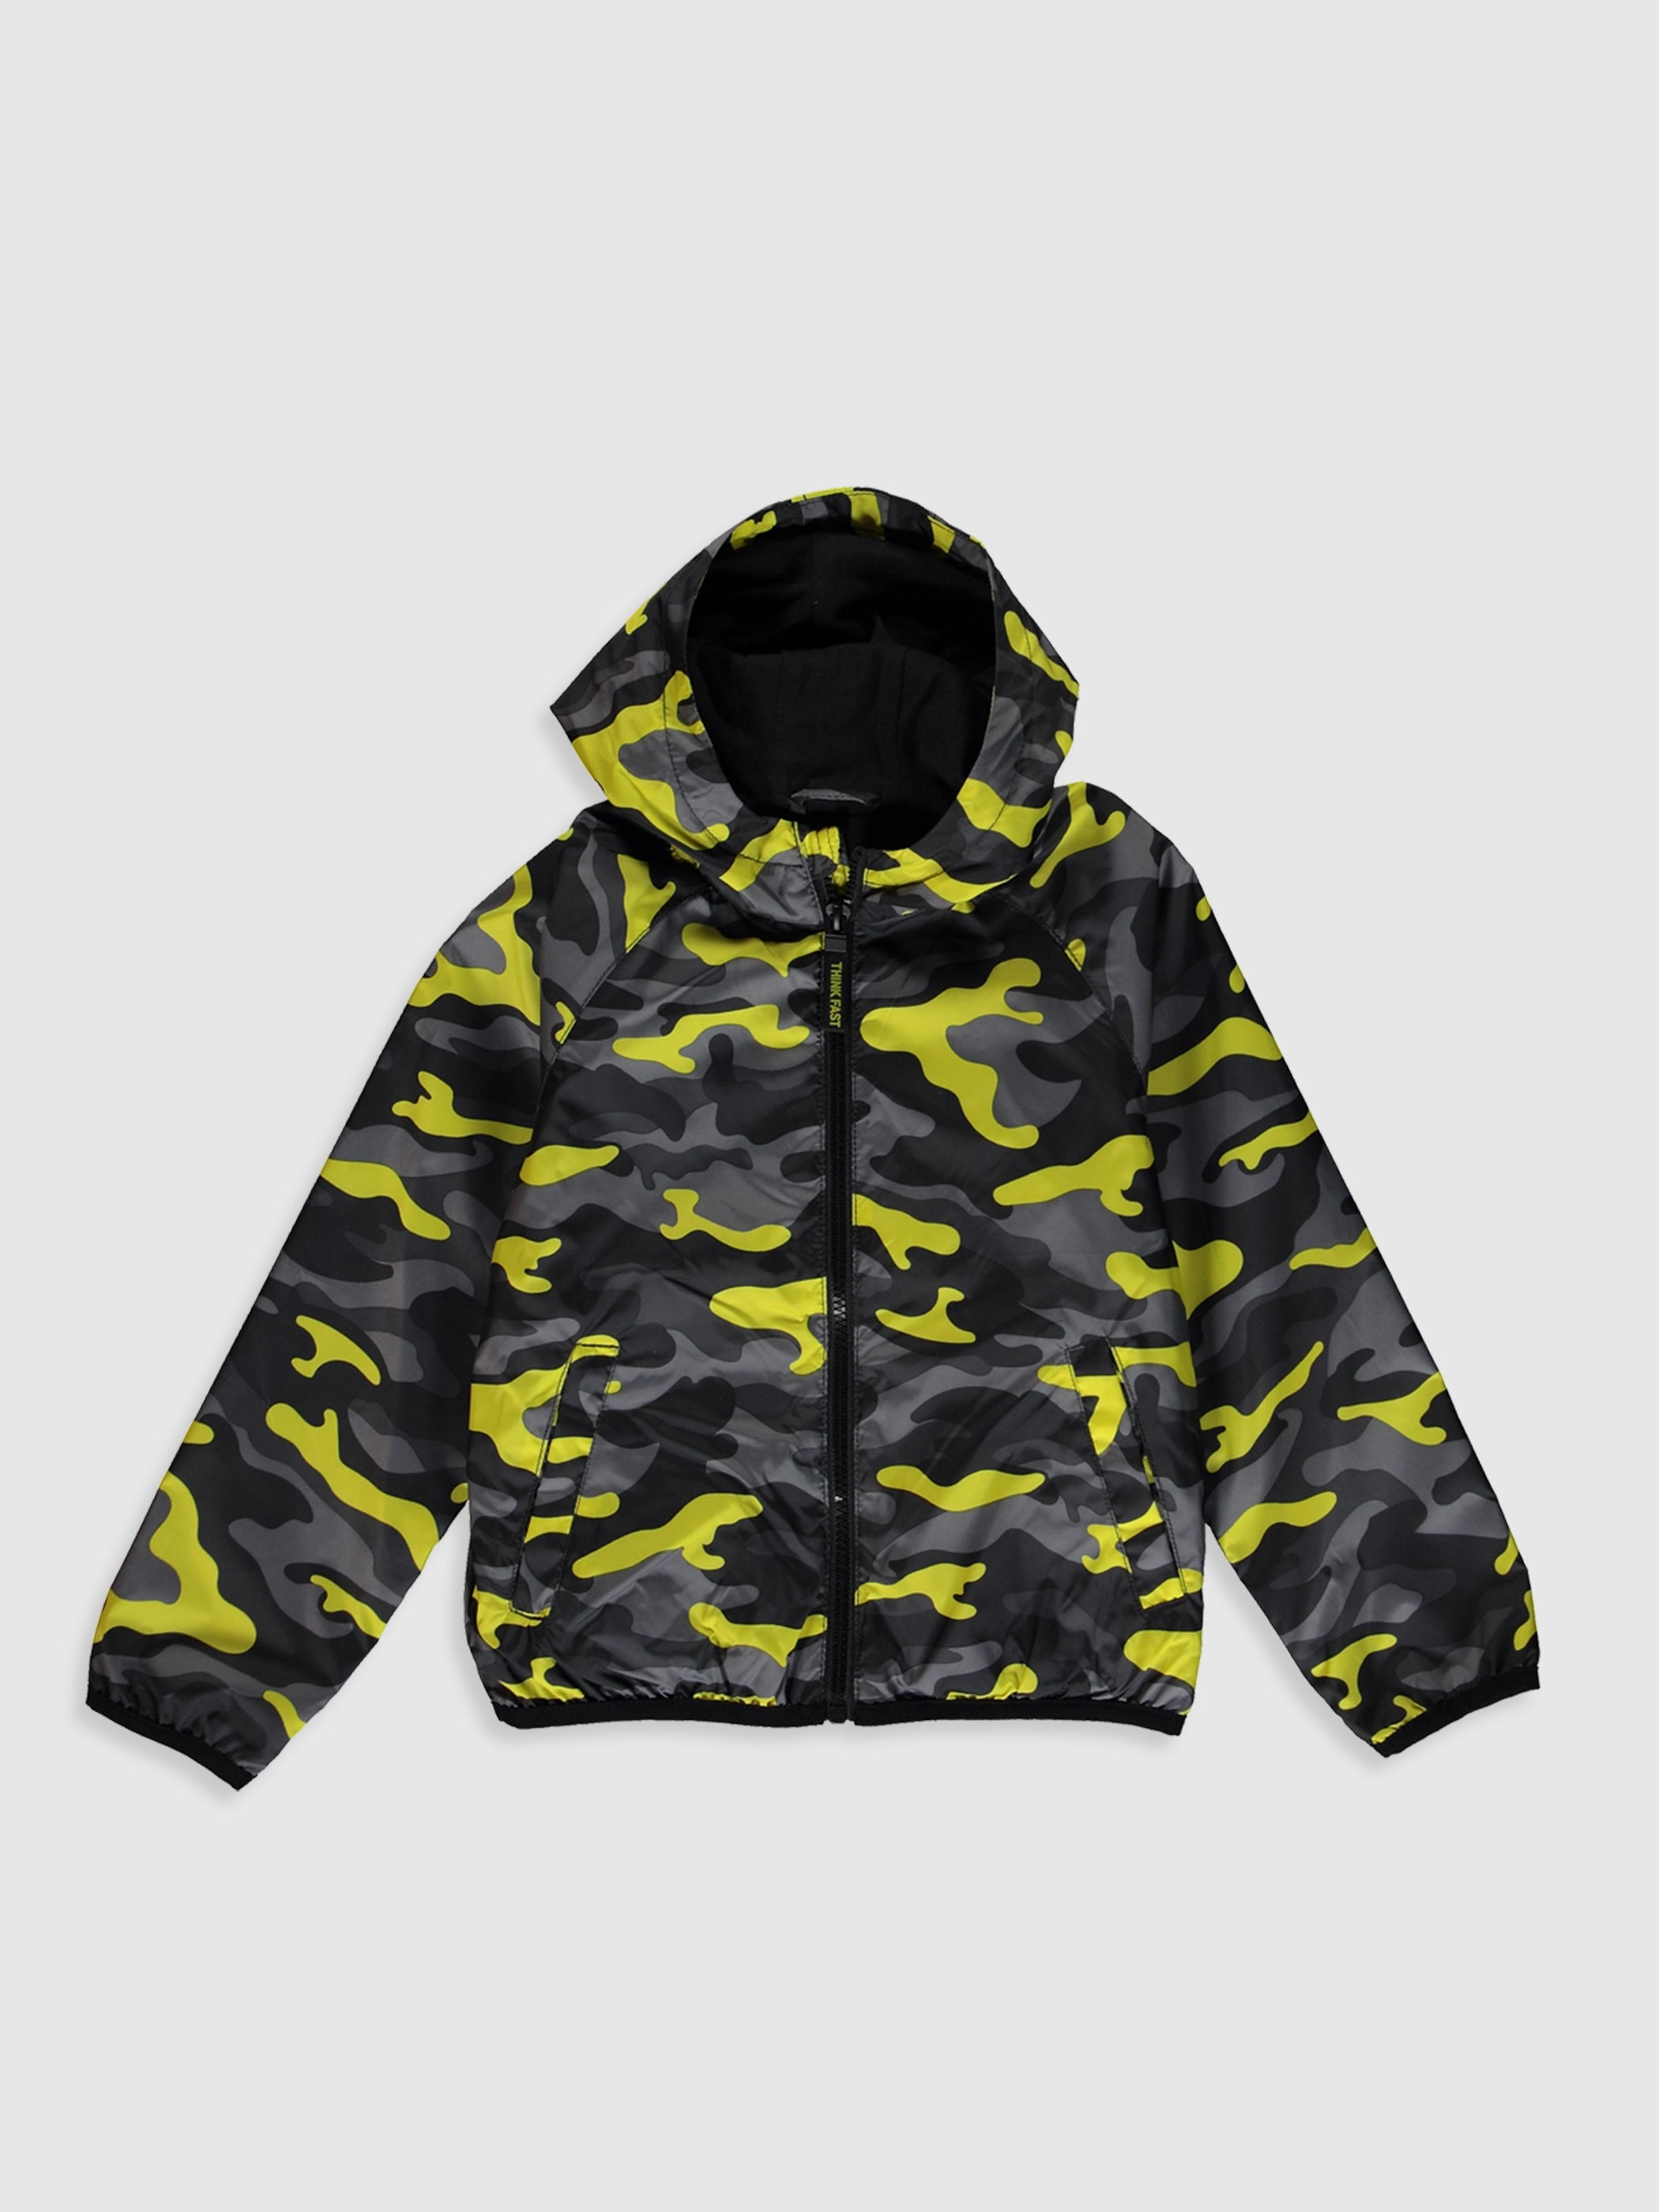 ANTHRACITE - Boy's Short Coat with Hood - 0S0041Z4